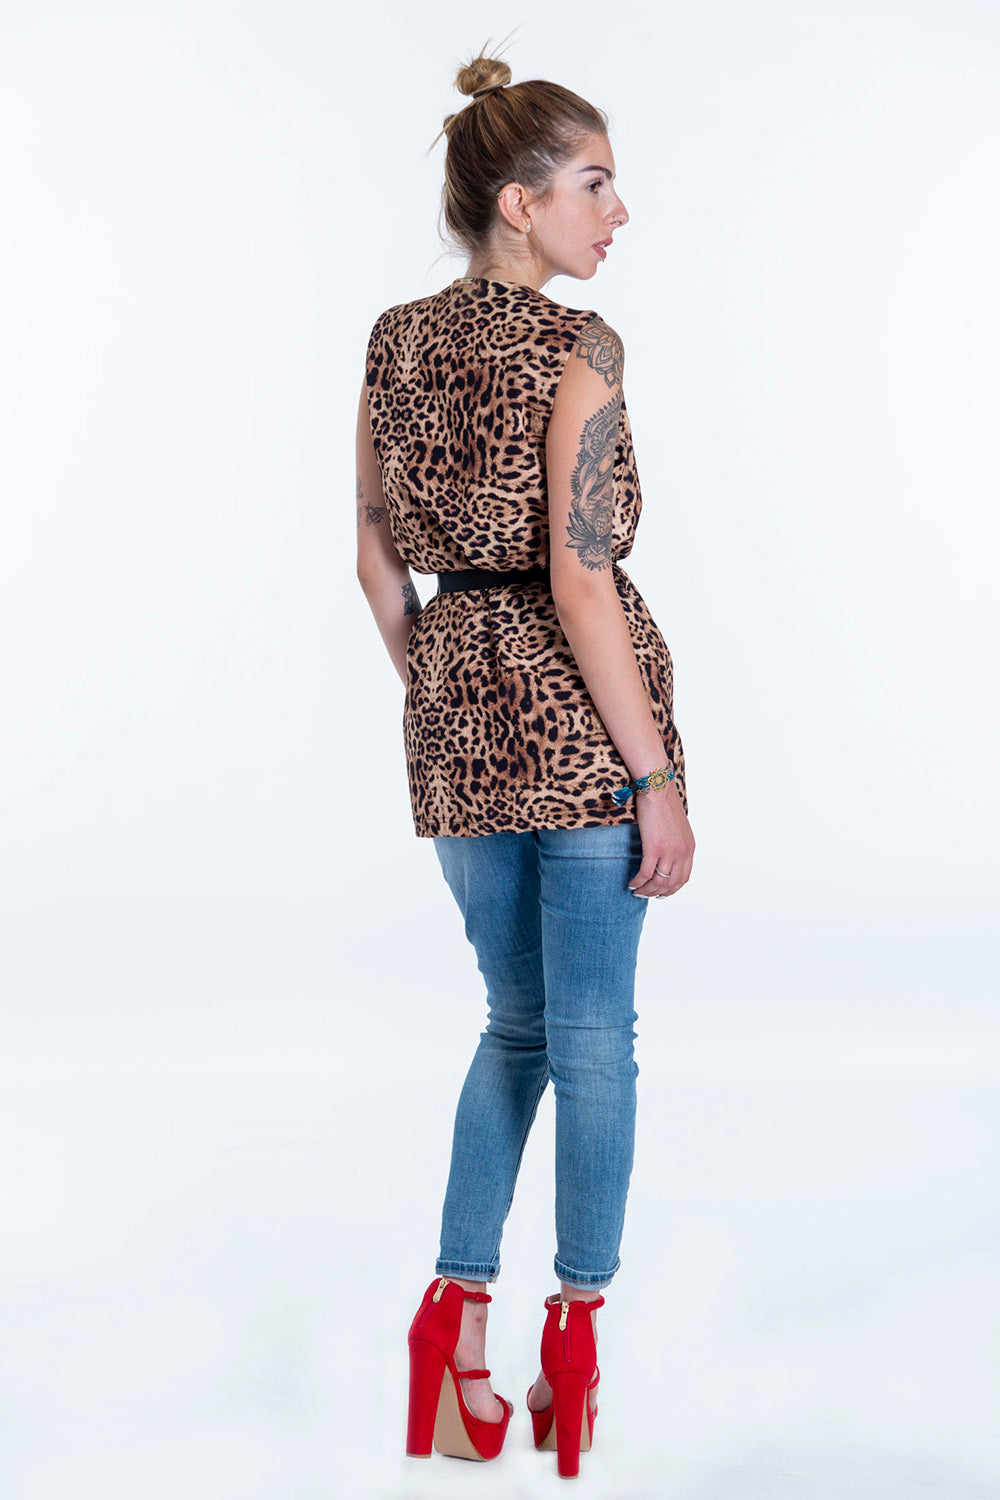 Akè leopard sleeveless blazer with tie waist belt